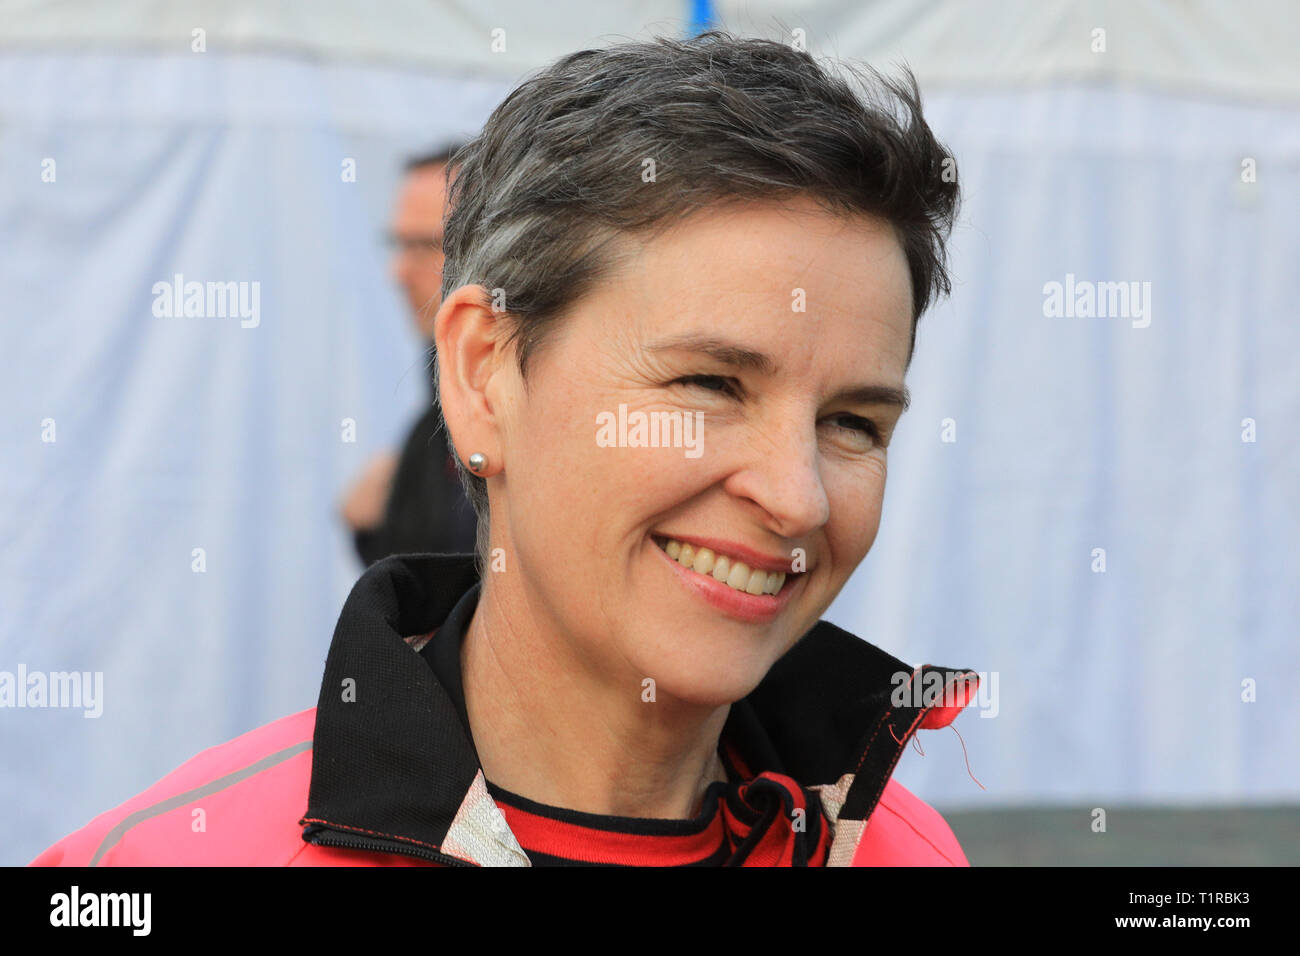 Westminster, London, UK. 28th Mar, 2018. Mary Creagh, MP, Labour, on College Green, Westminster. Credit: Imageplotter/Alamy Live News - Stock Image